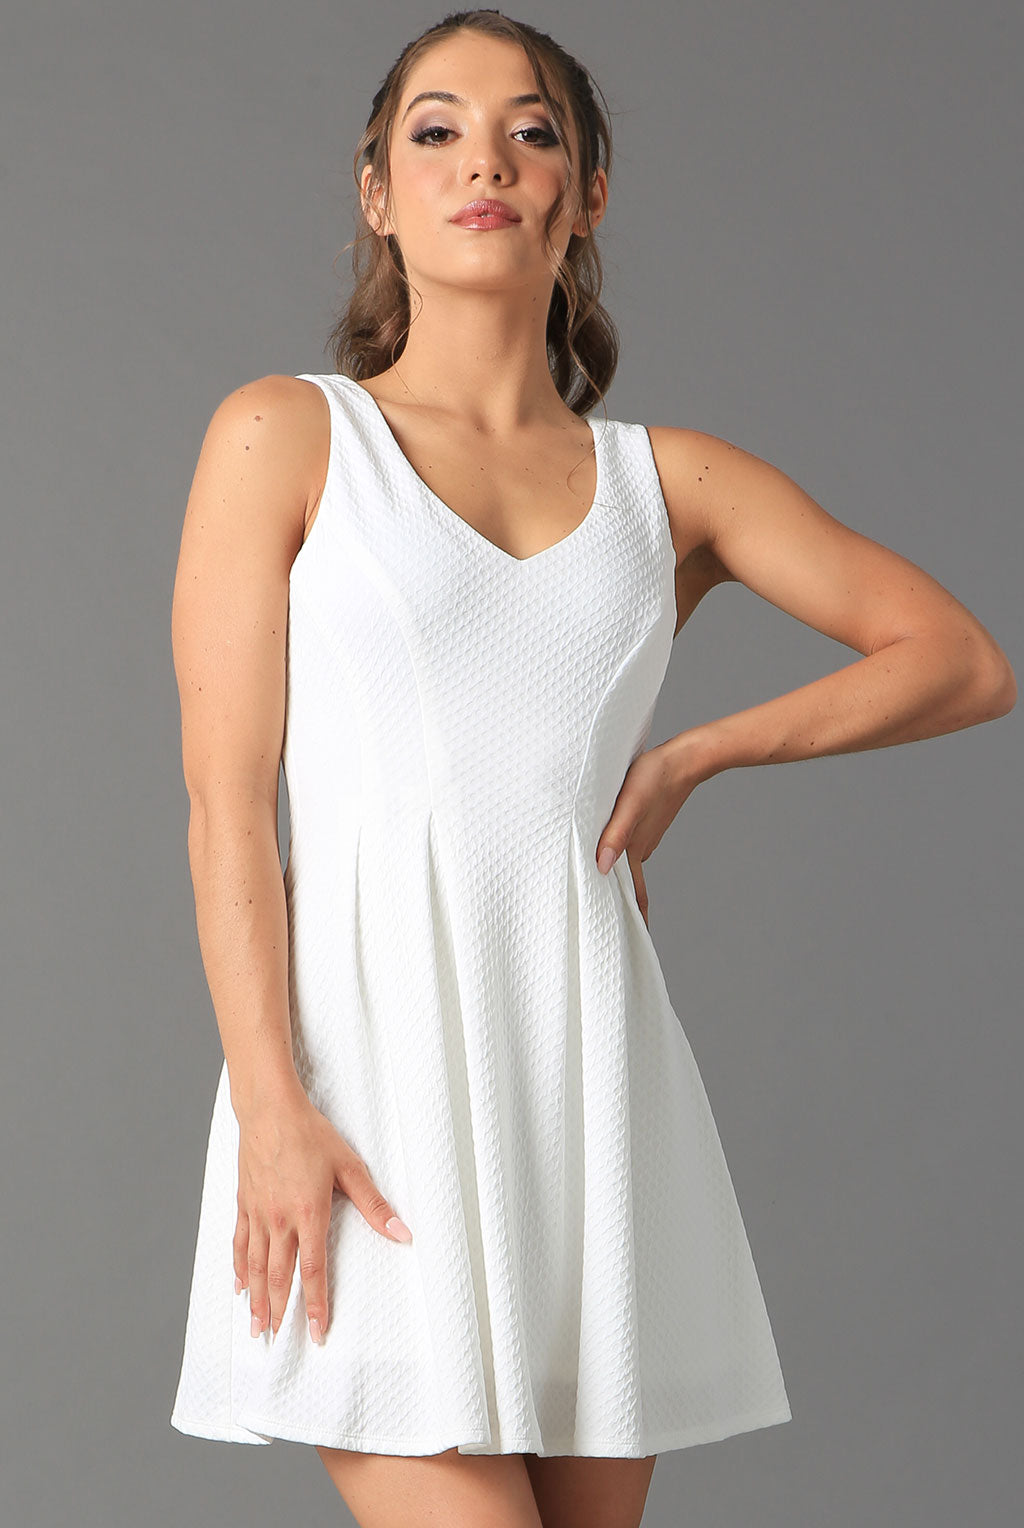 Teeze Me | Sleeveless V-Neck Textured Dress | Off-White - Teeze Me